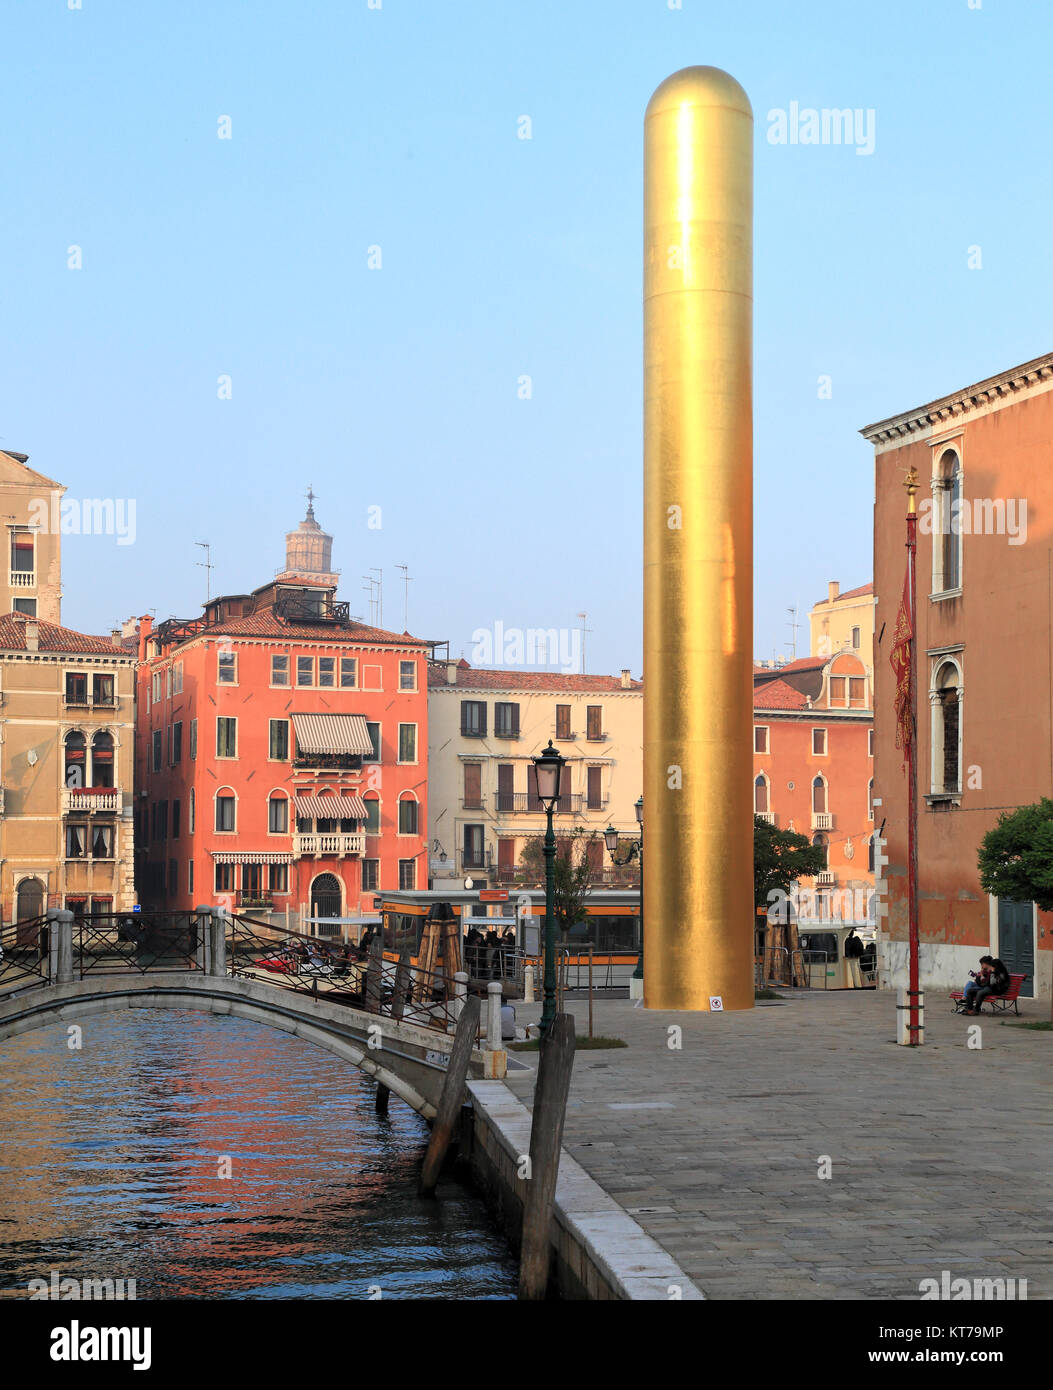 The Golden Tower by James Lee Byars, Venice Biennale 2017 - Stock Image